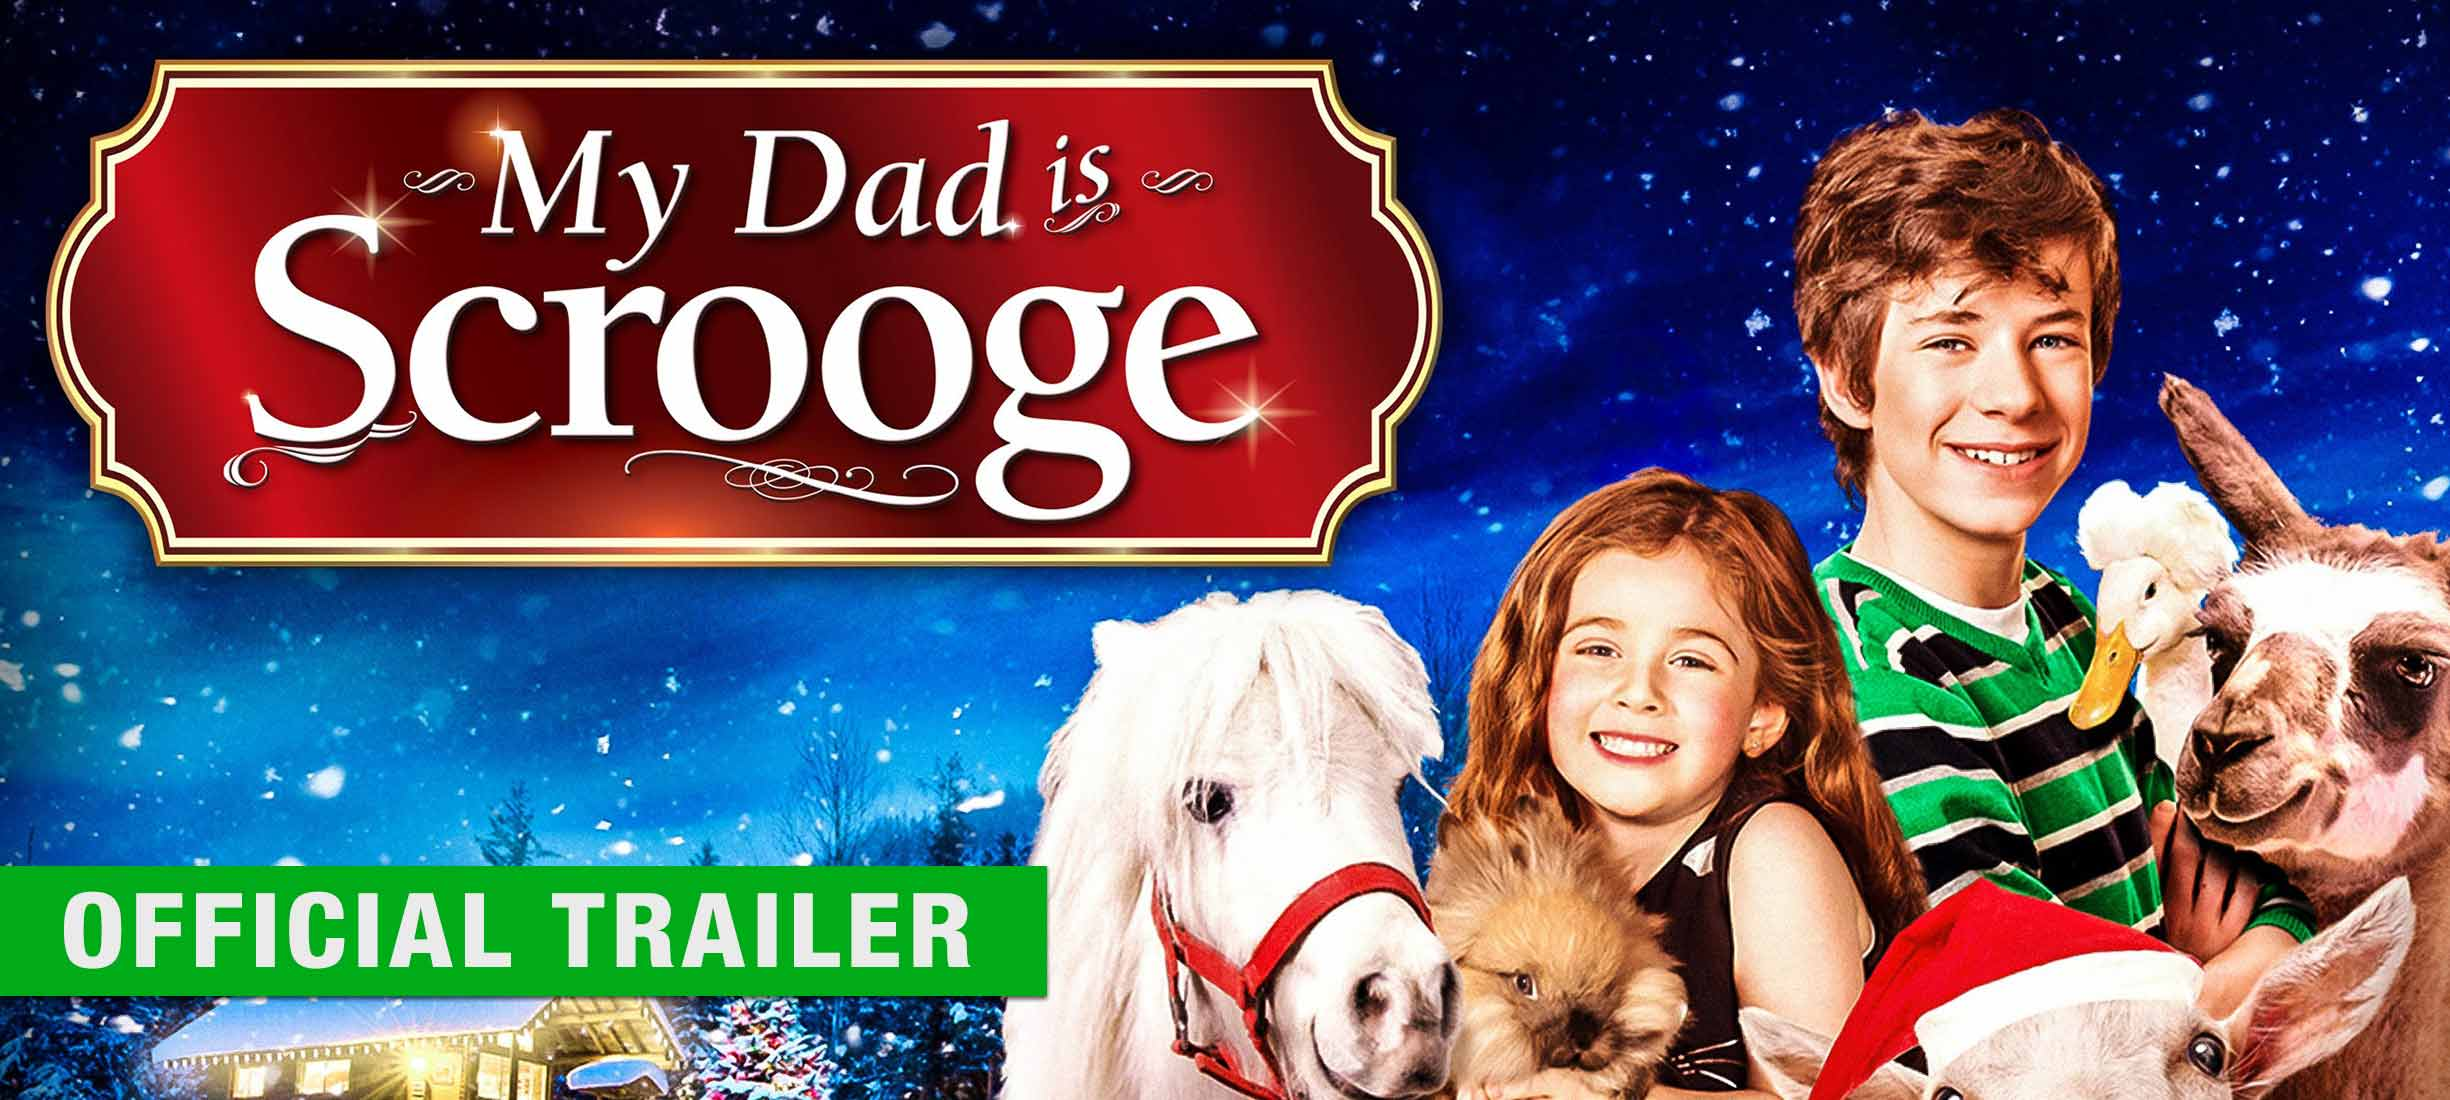 My Dad Is Scrooge: Trailer